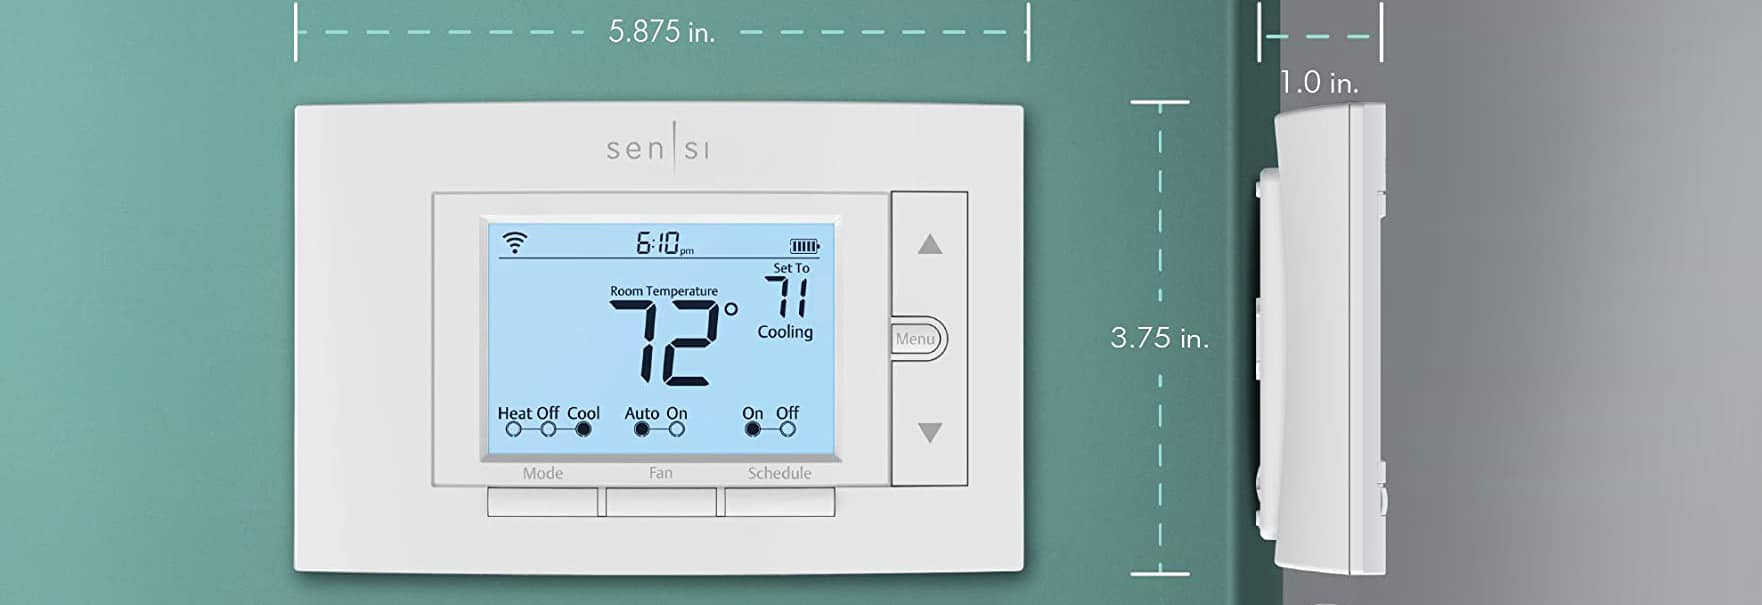 Emerson Sensi Wi-Fi Smart Thermostat Review - Best Programable Thermostat